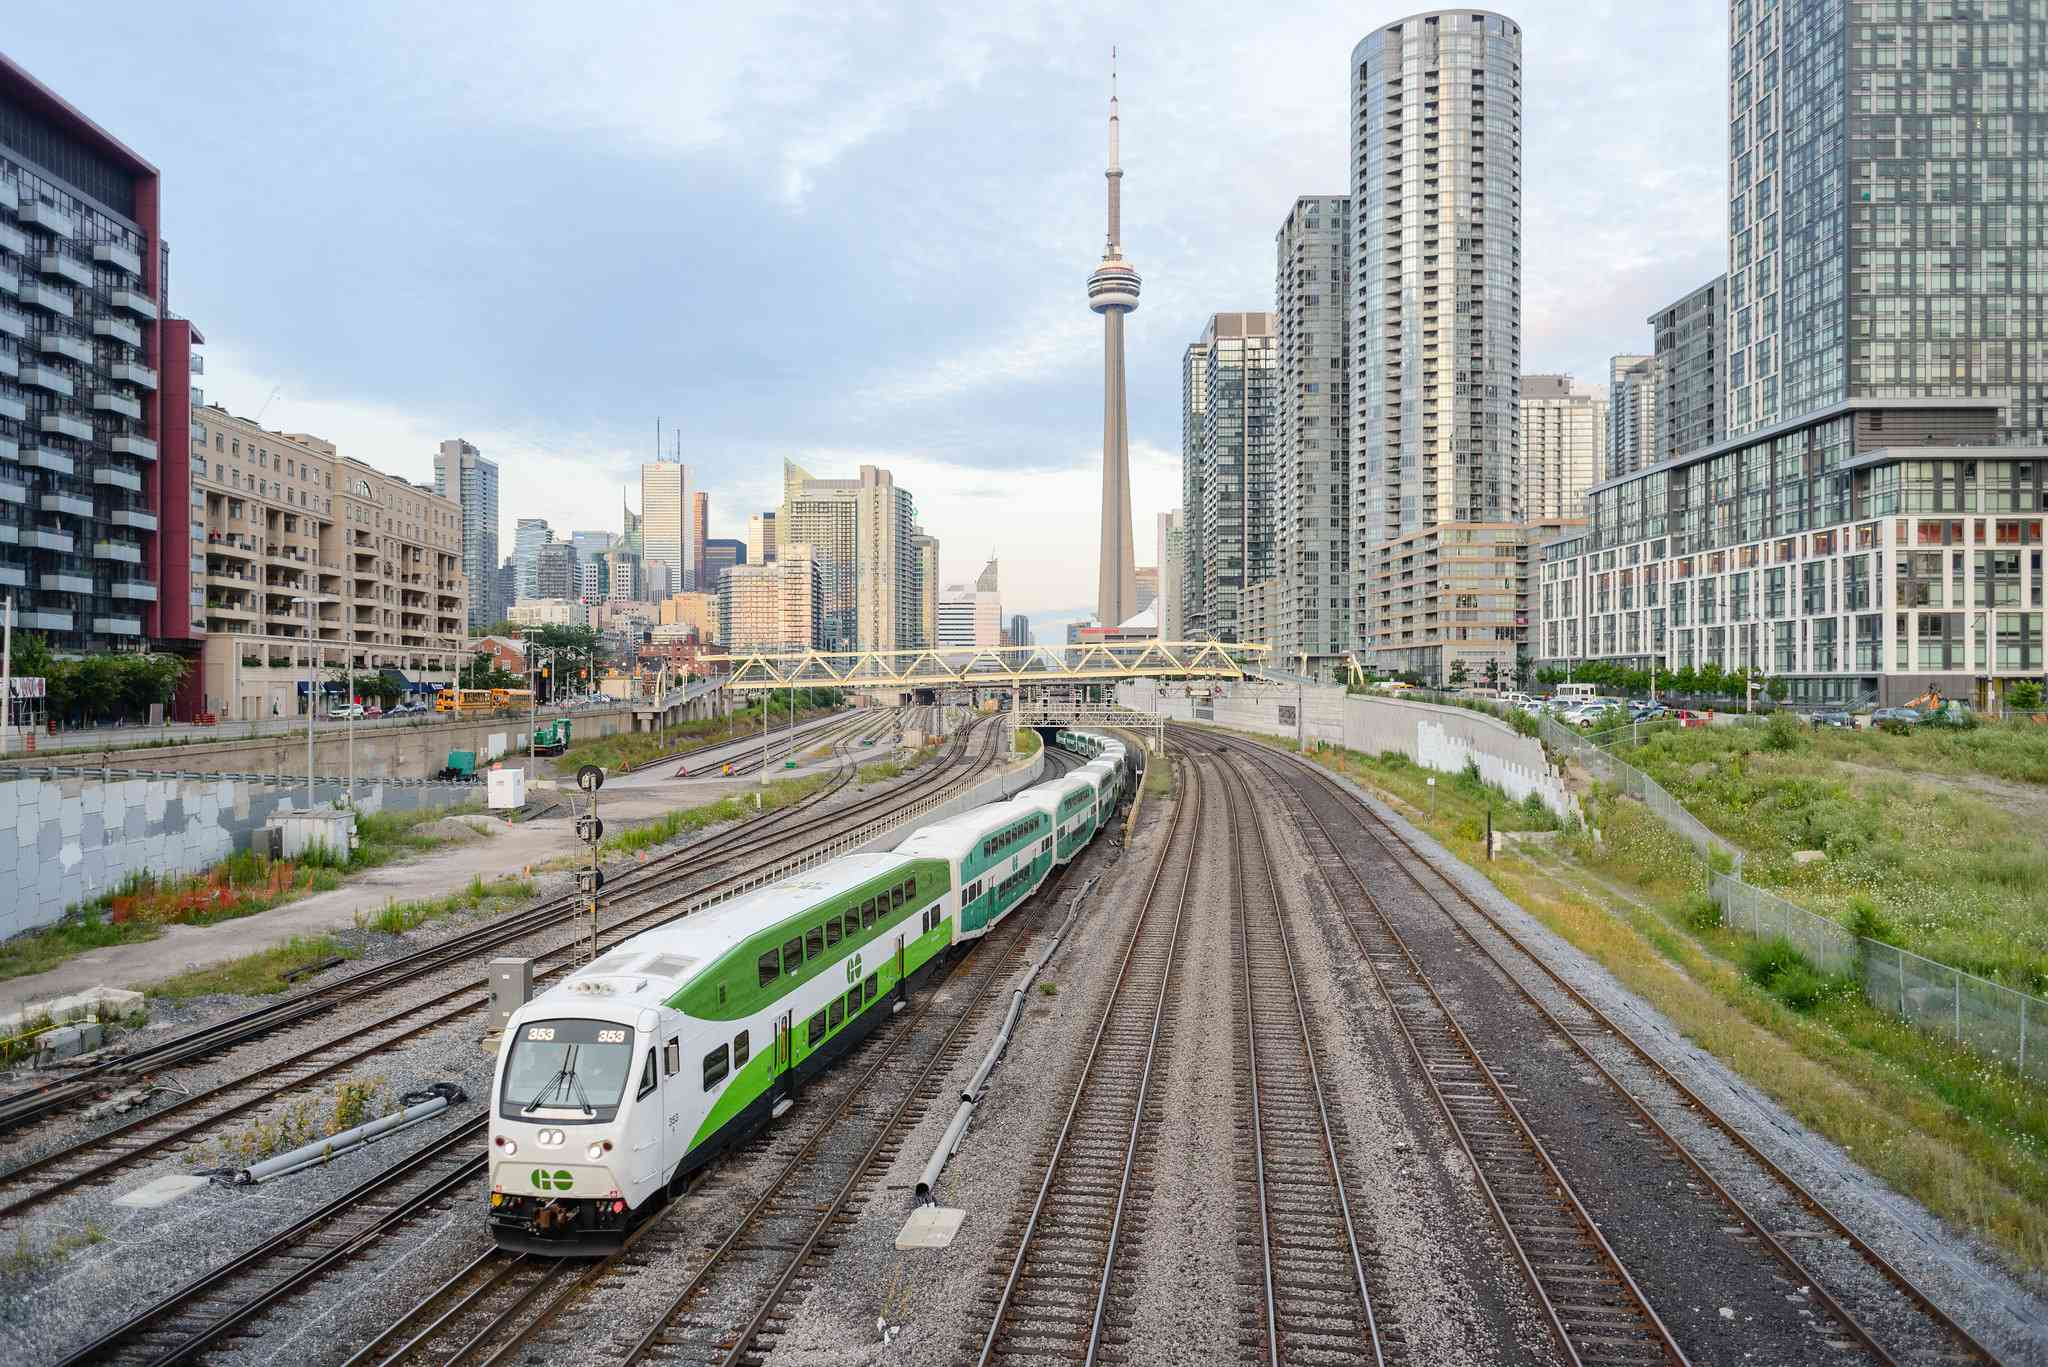 A GO Transit train leaving Toronto, in the background is the CN Tower